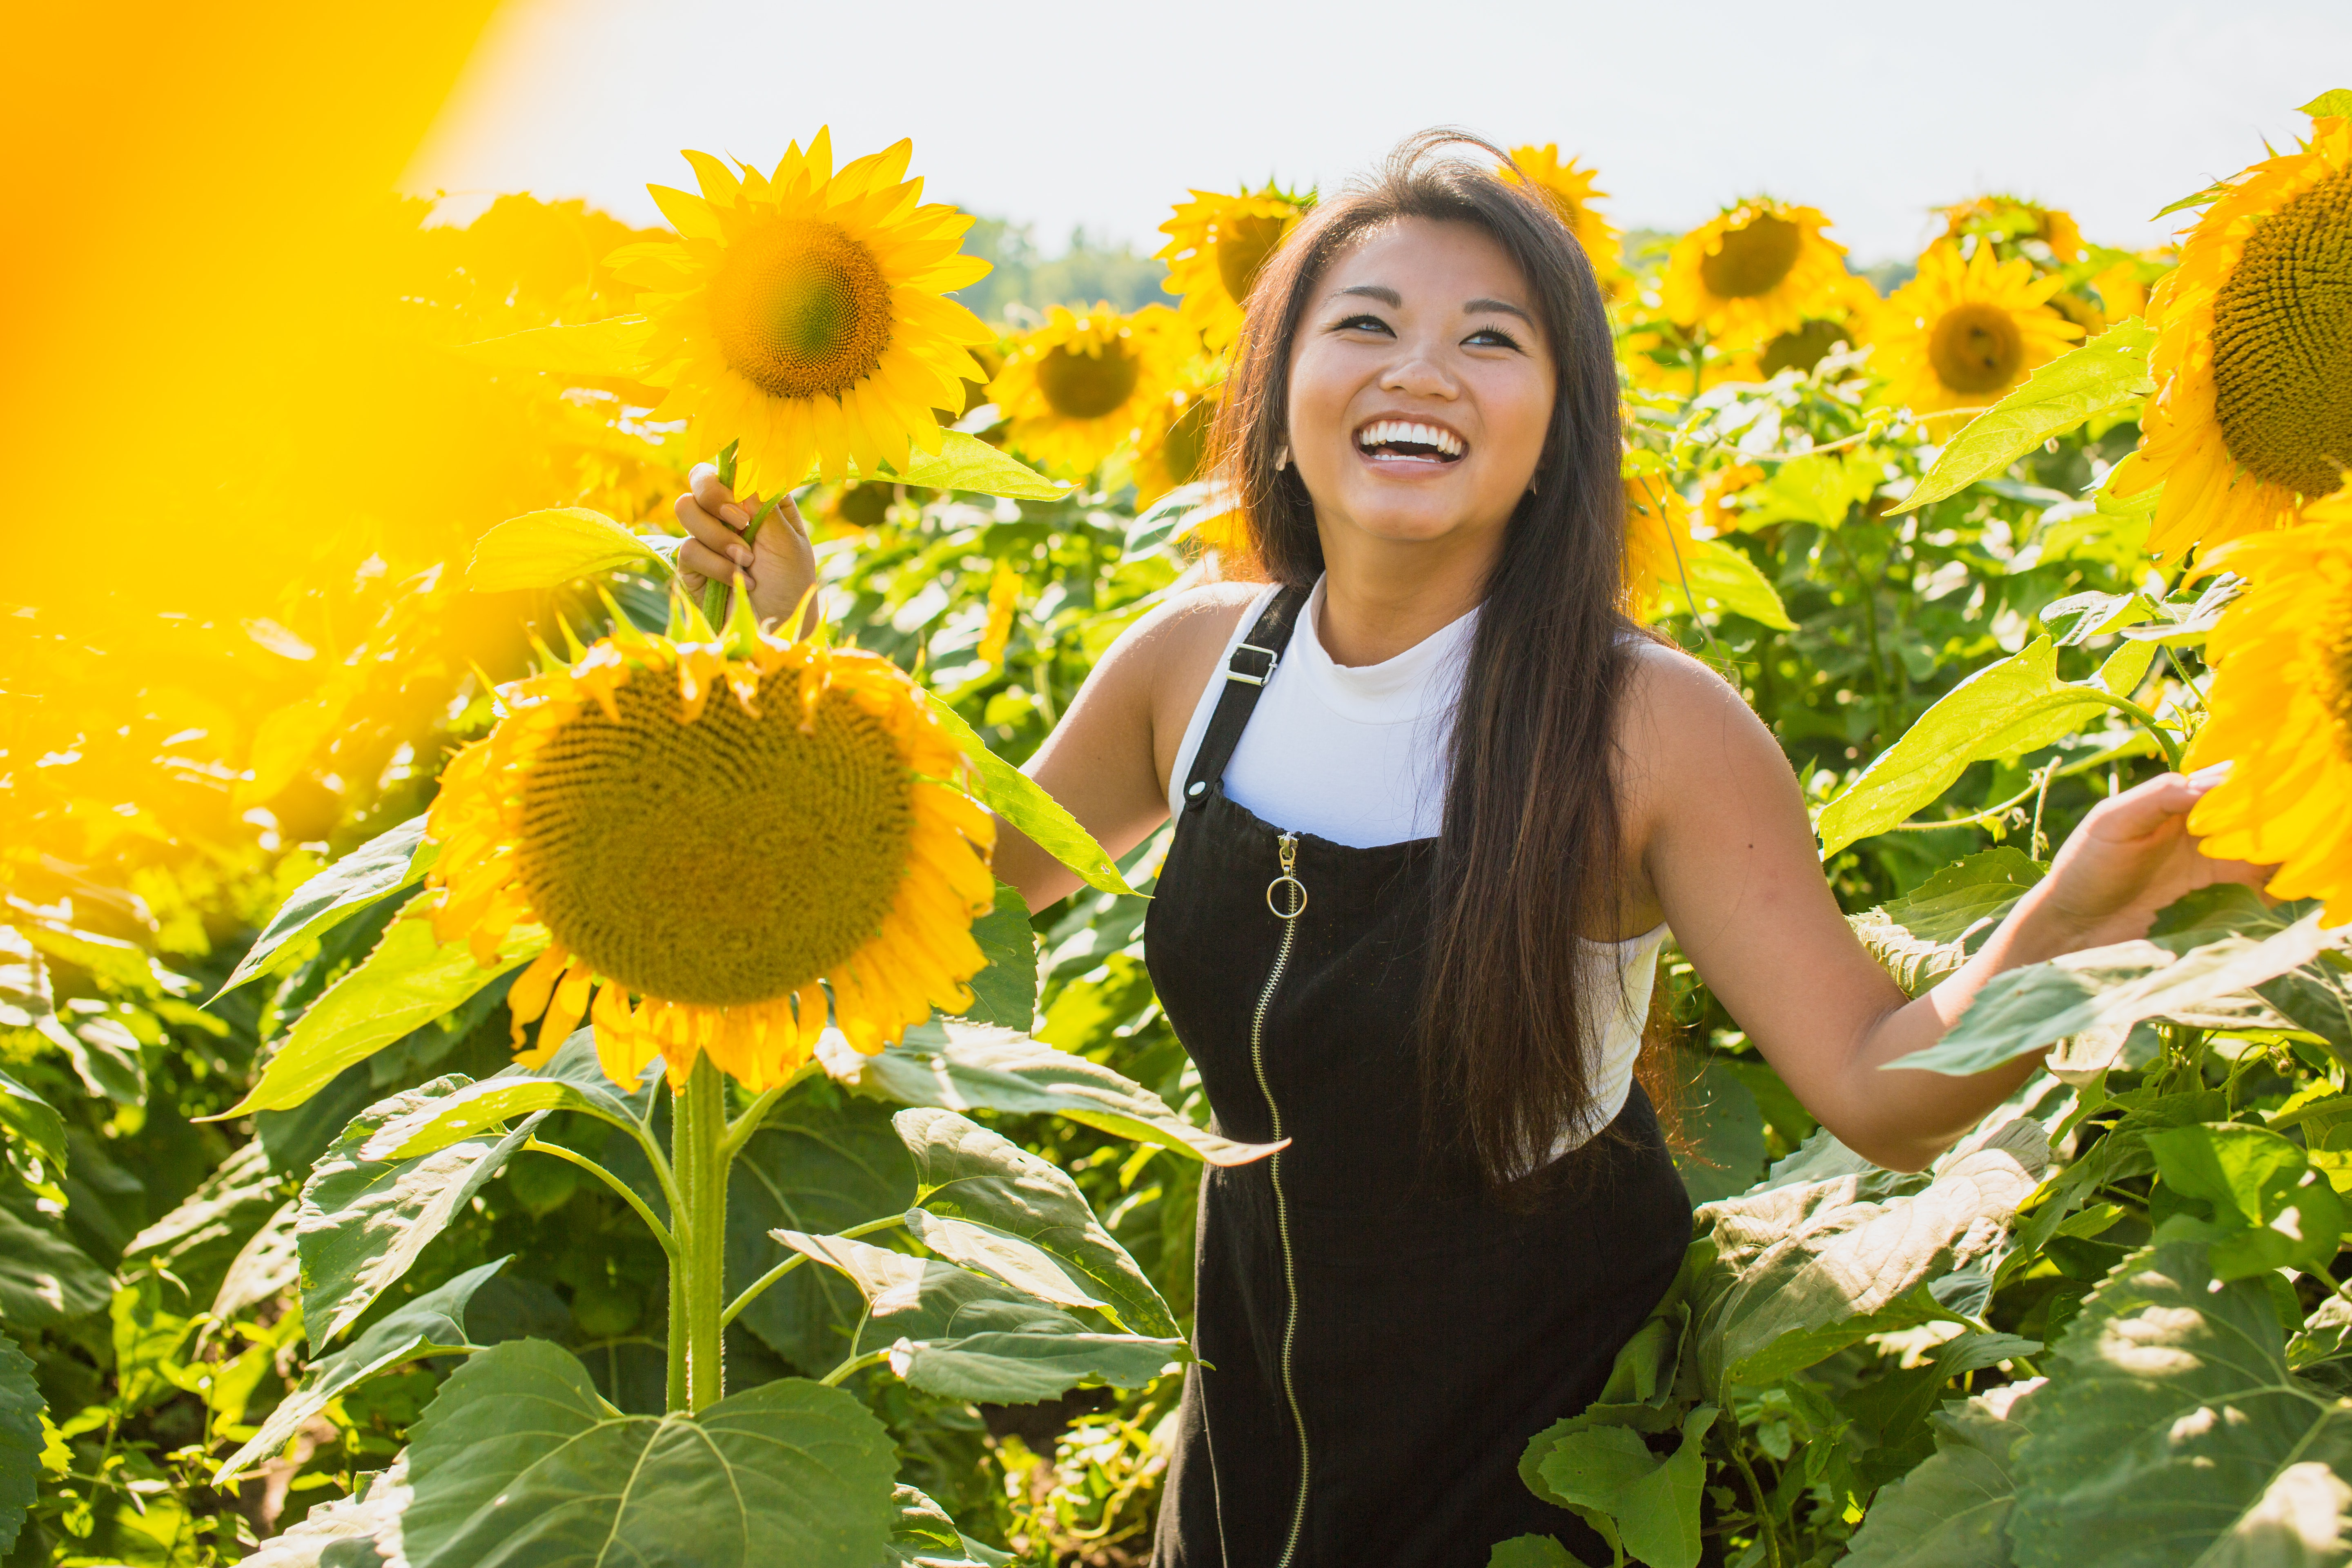 woman surrounded with sunflowers at daytime